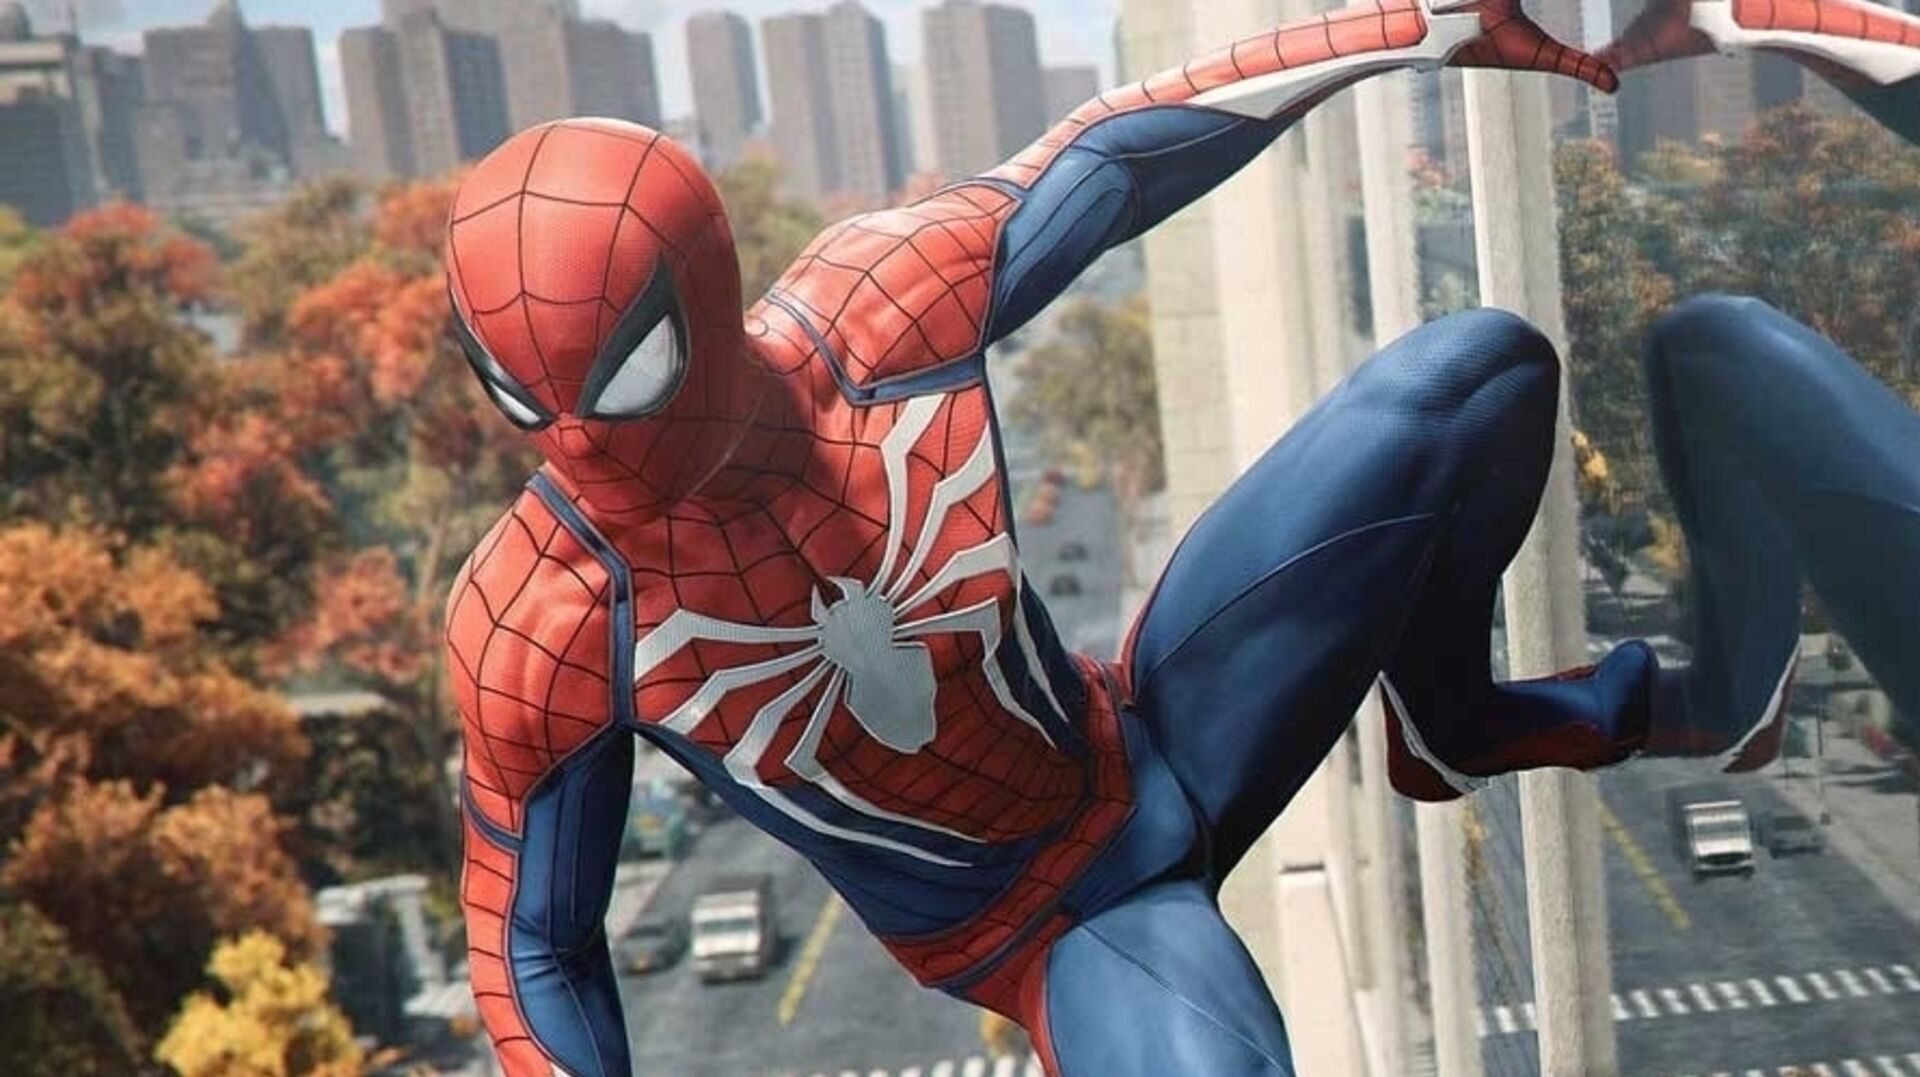 Marvel spiderman for pc download